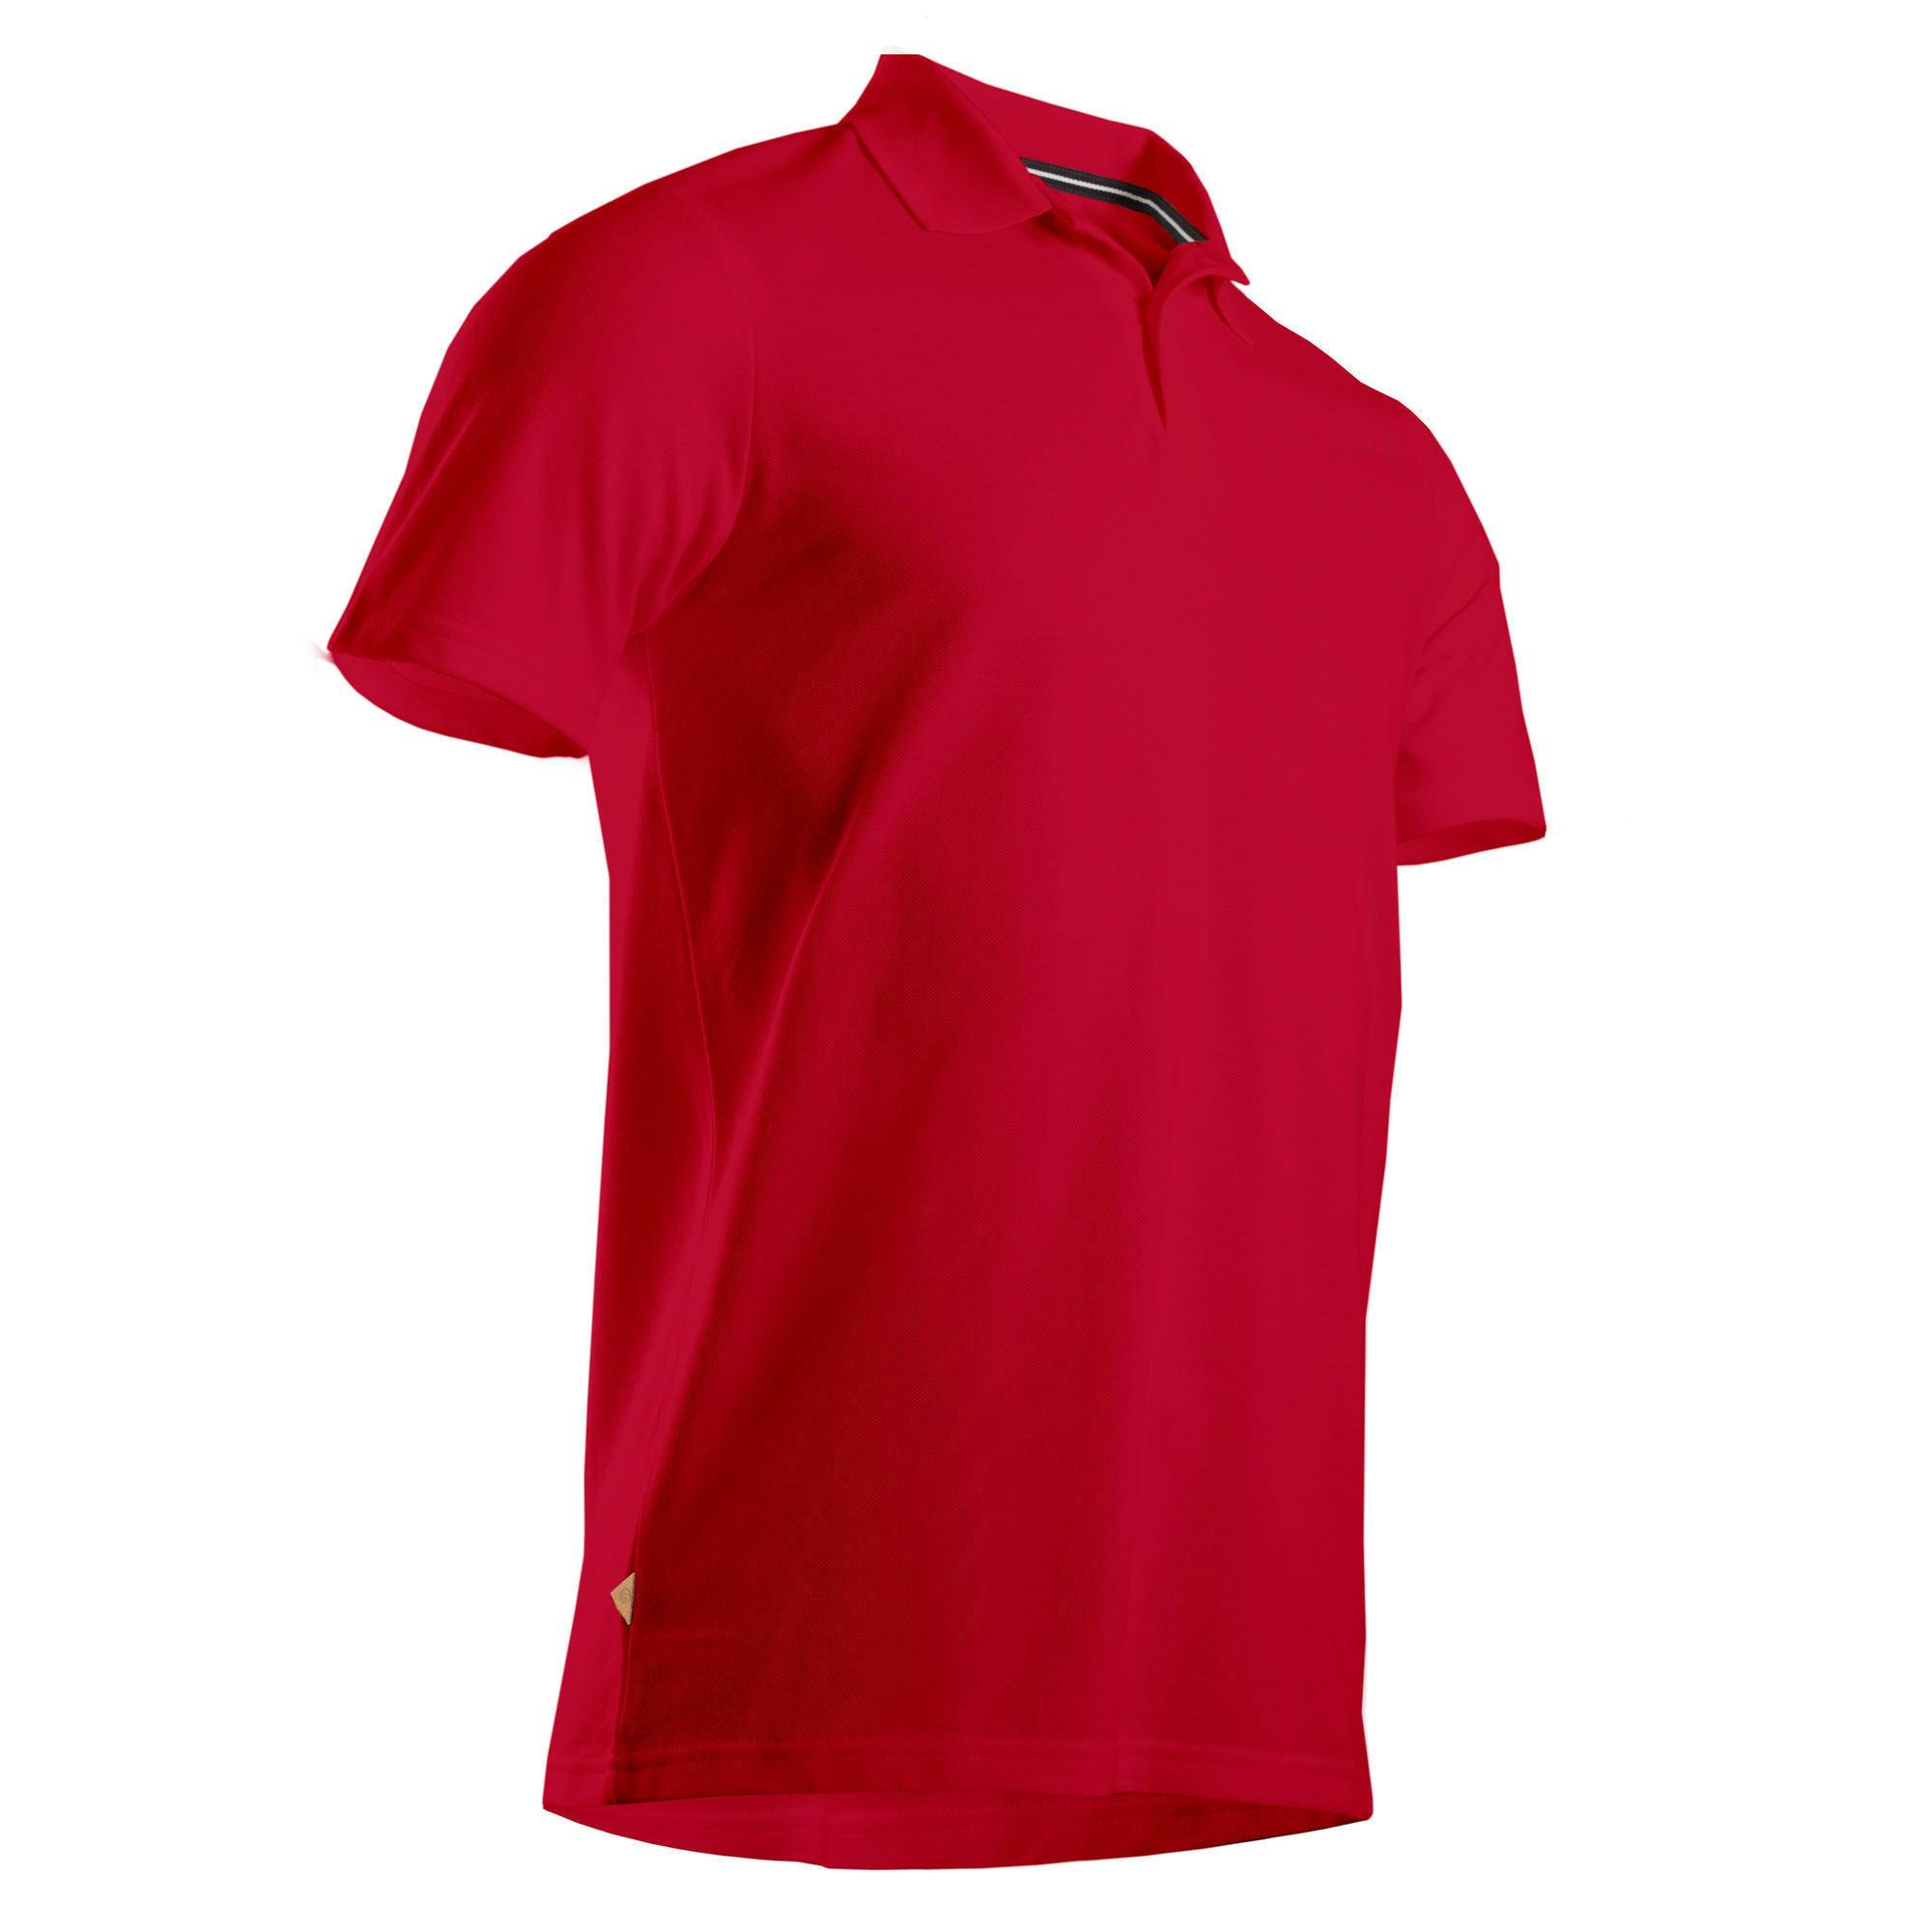 Inesis POLO DE GOLF HOMME MANCHES COURTES ROUGE - Inesis